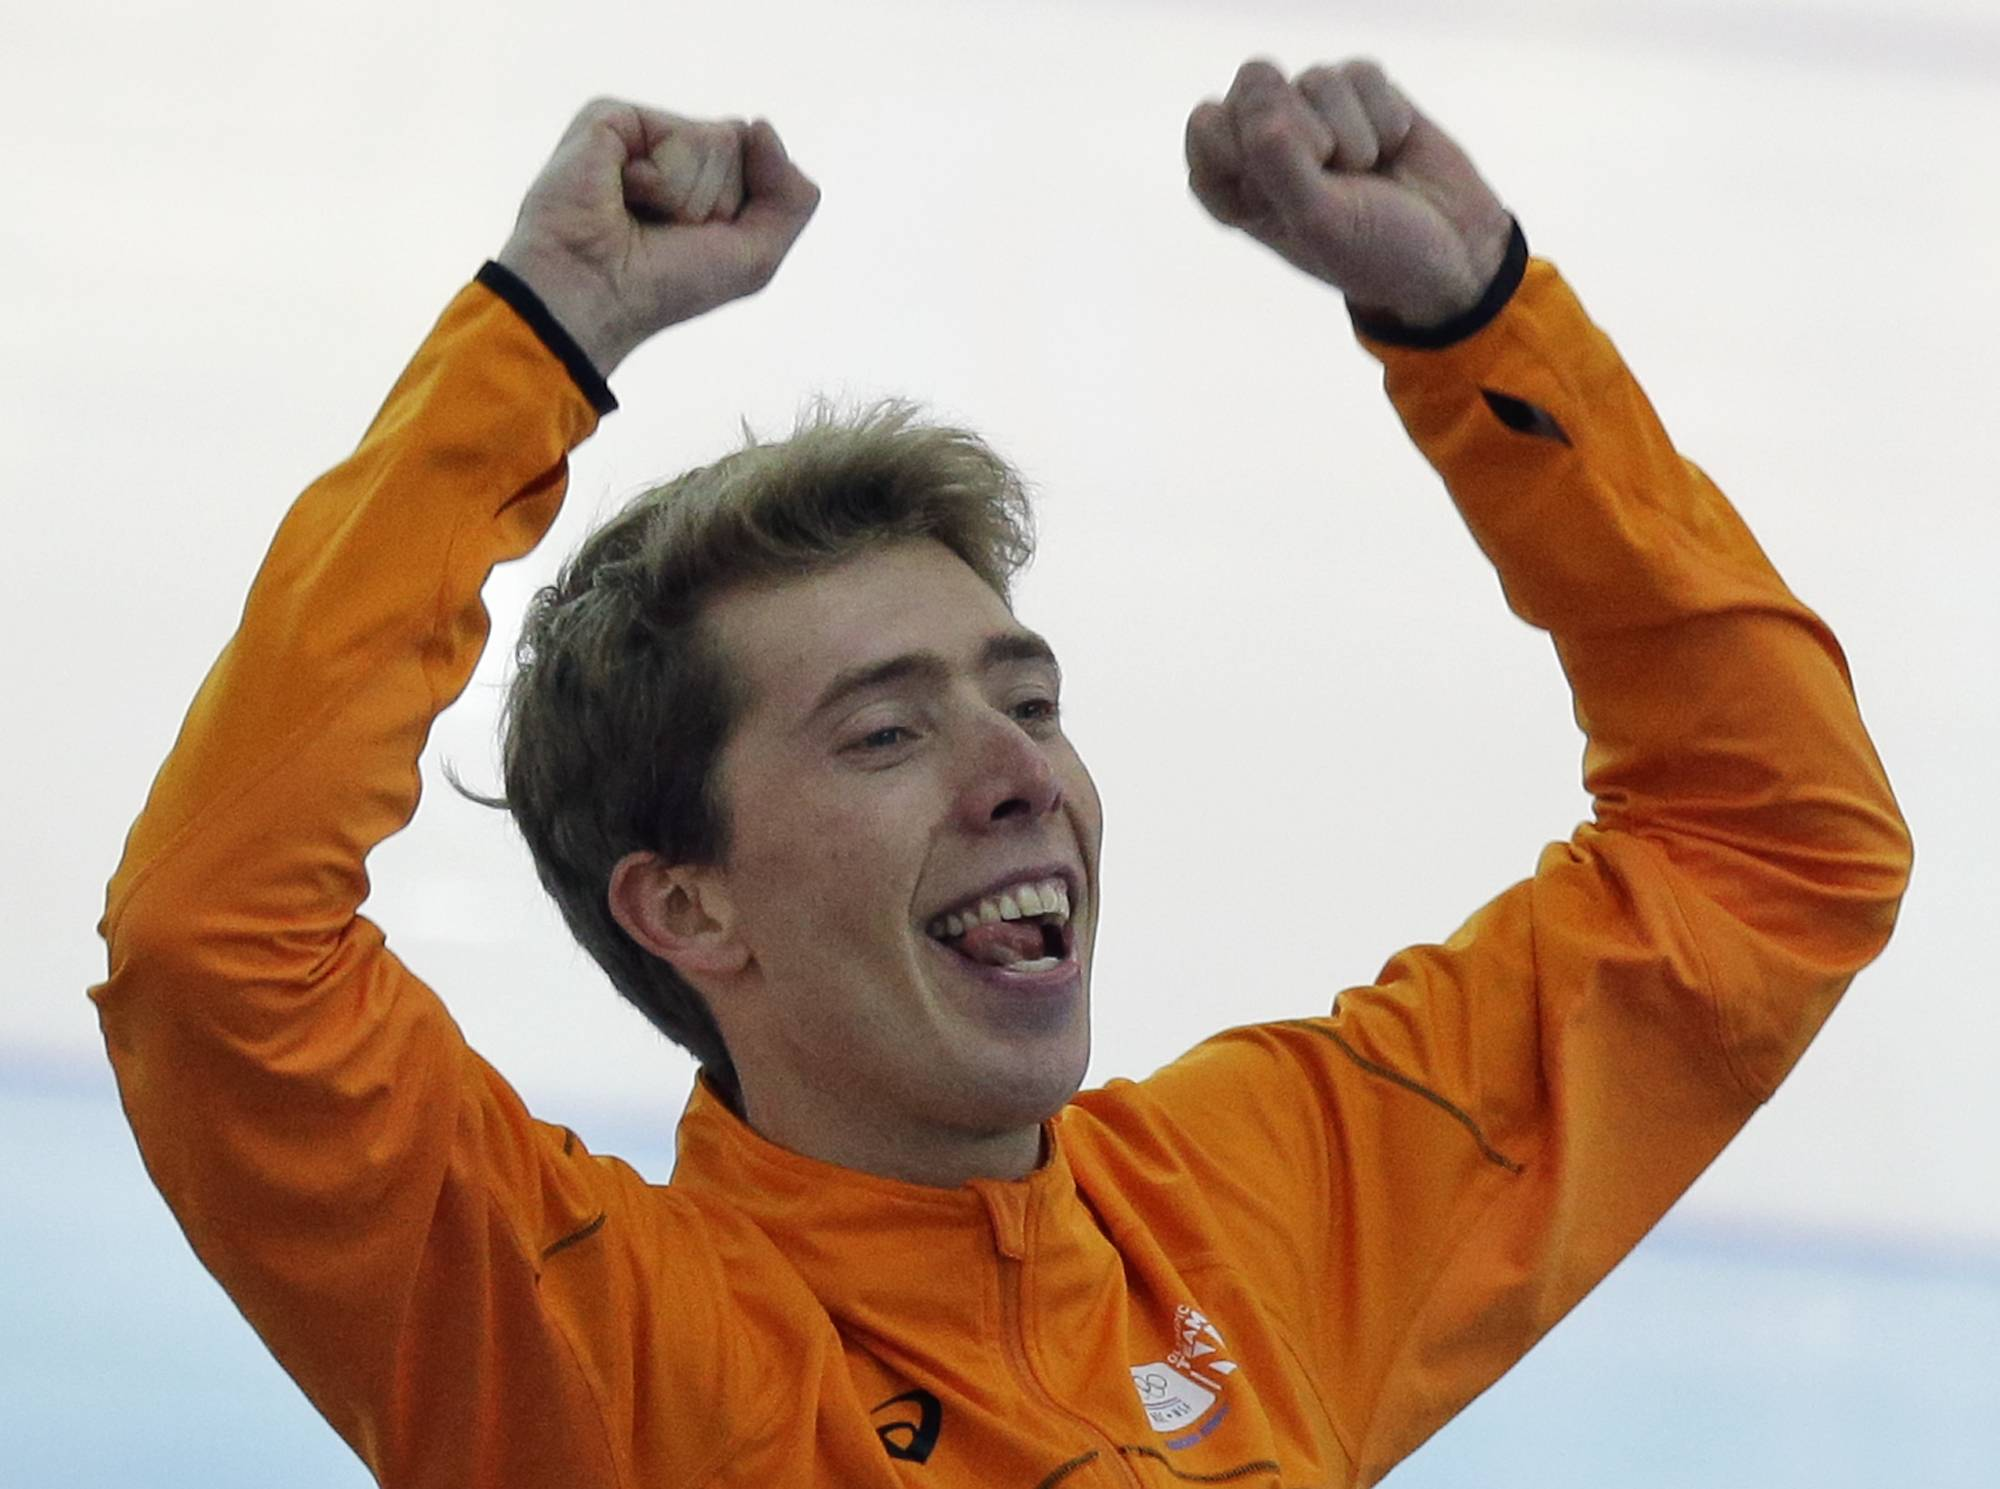 Gold medalist Jorrit Bergsma of the Netherlands celebrates after the final race in the men's 10,000-meter speedskating race at the Adler Arena Skating Center during the 2014 Winter Olympics in Sochi, Russia, Tuesday, Feb. 18, 2014.